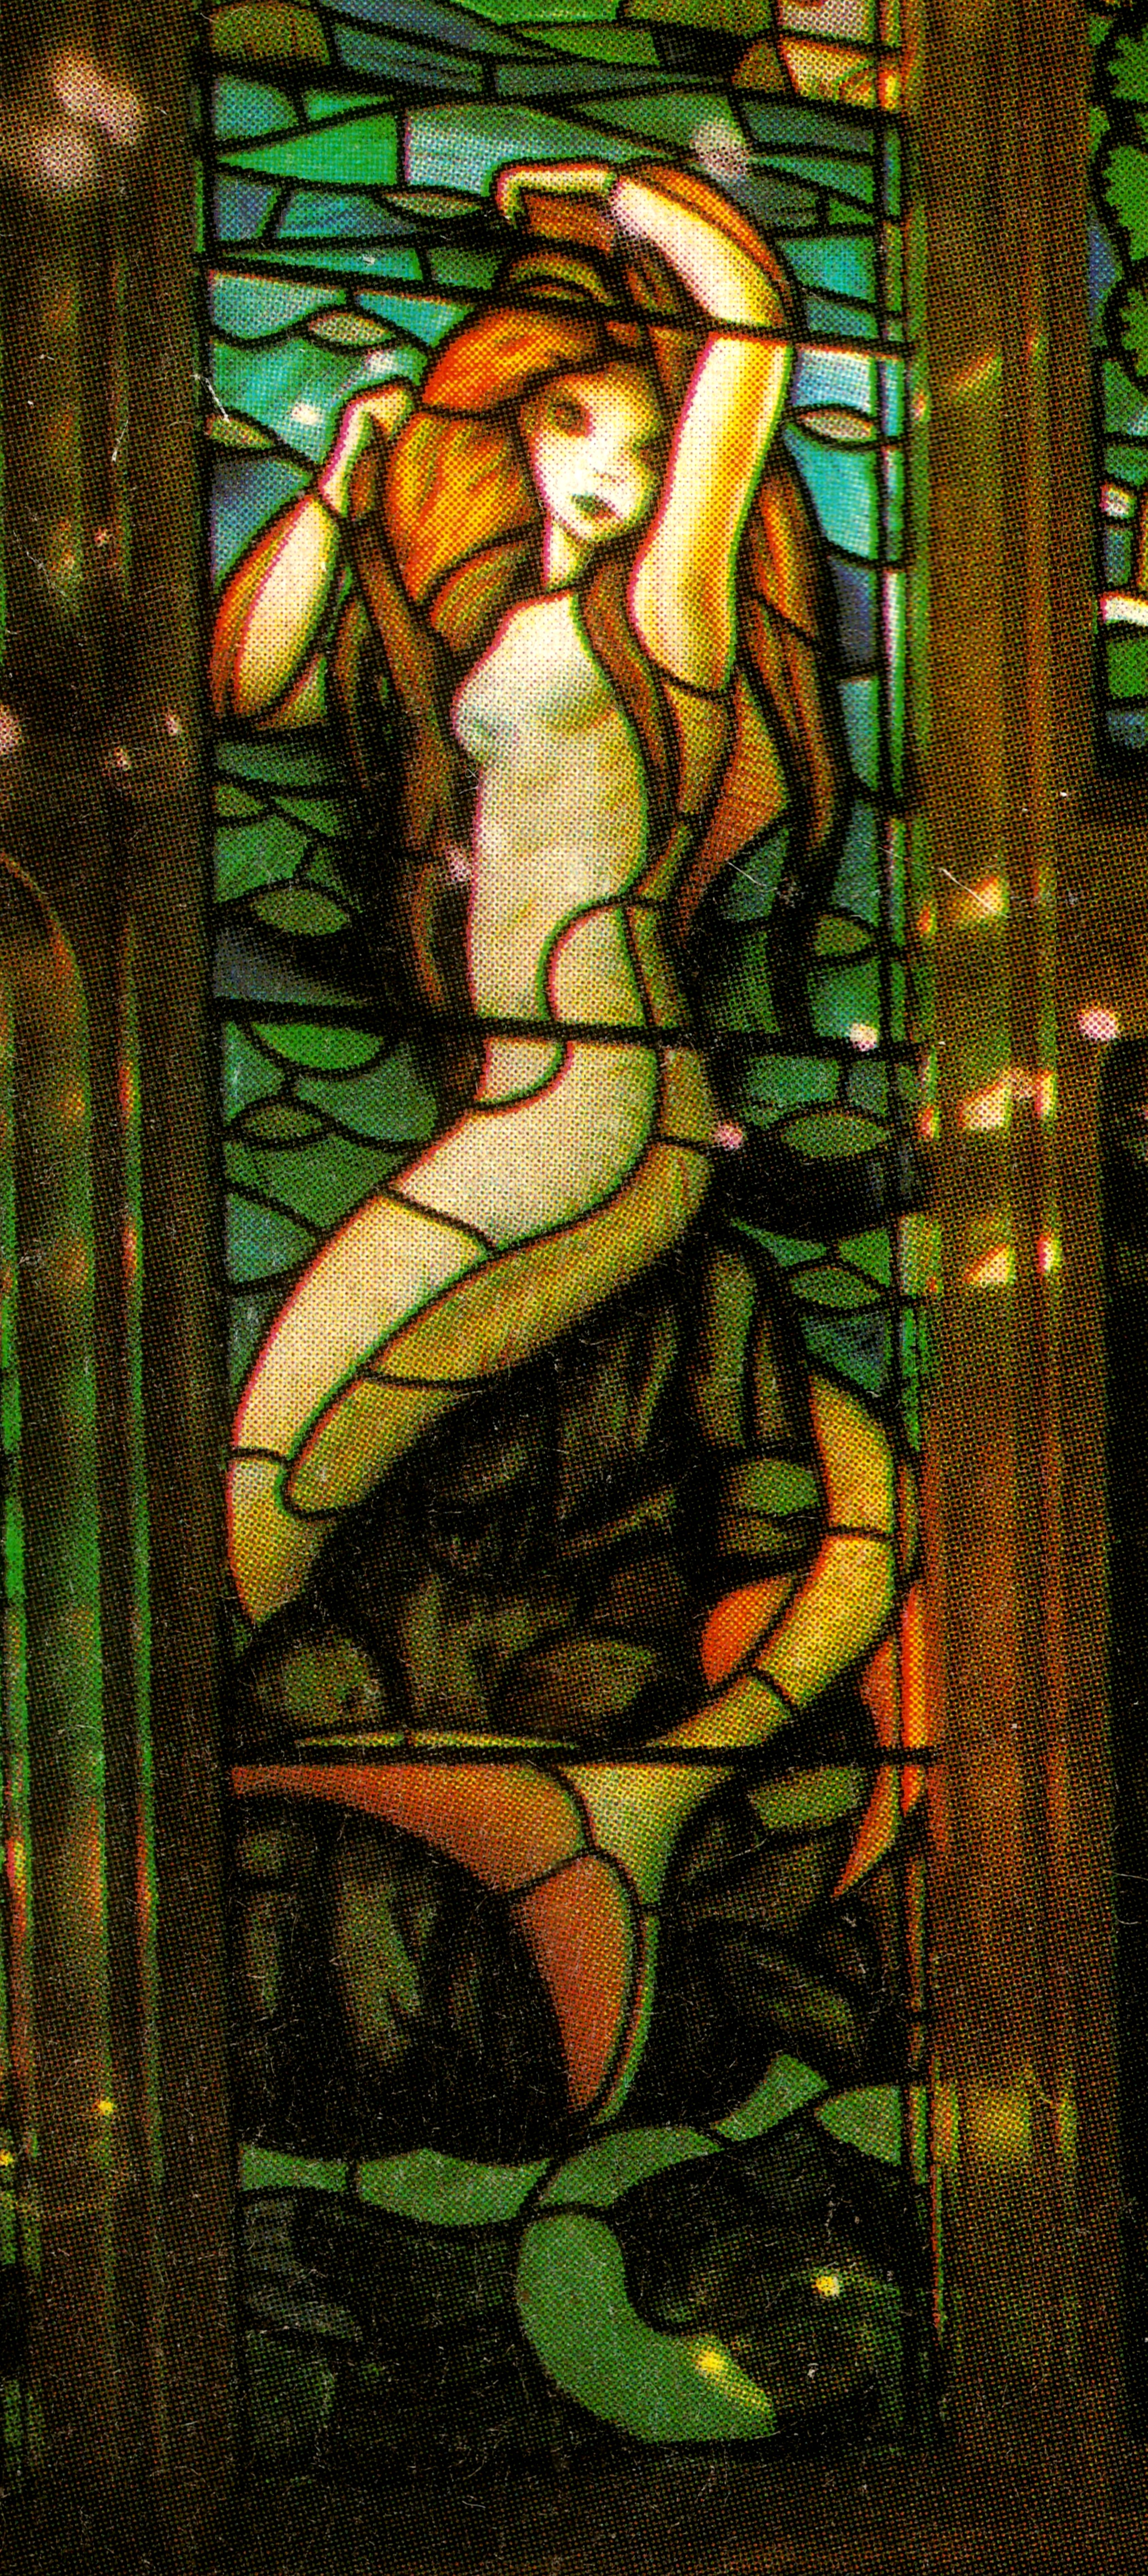 Harry Potter Wall Mural Harry Potter Stained Glass Mermaid By Sebastianmerman On